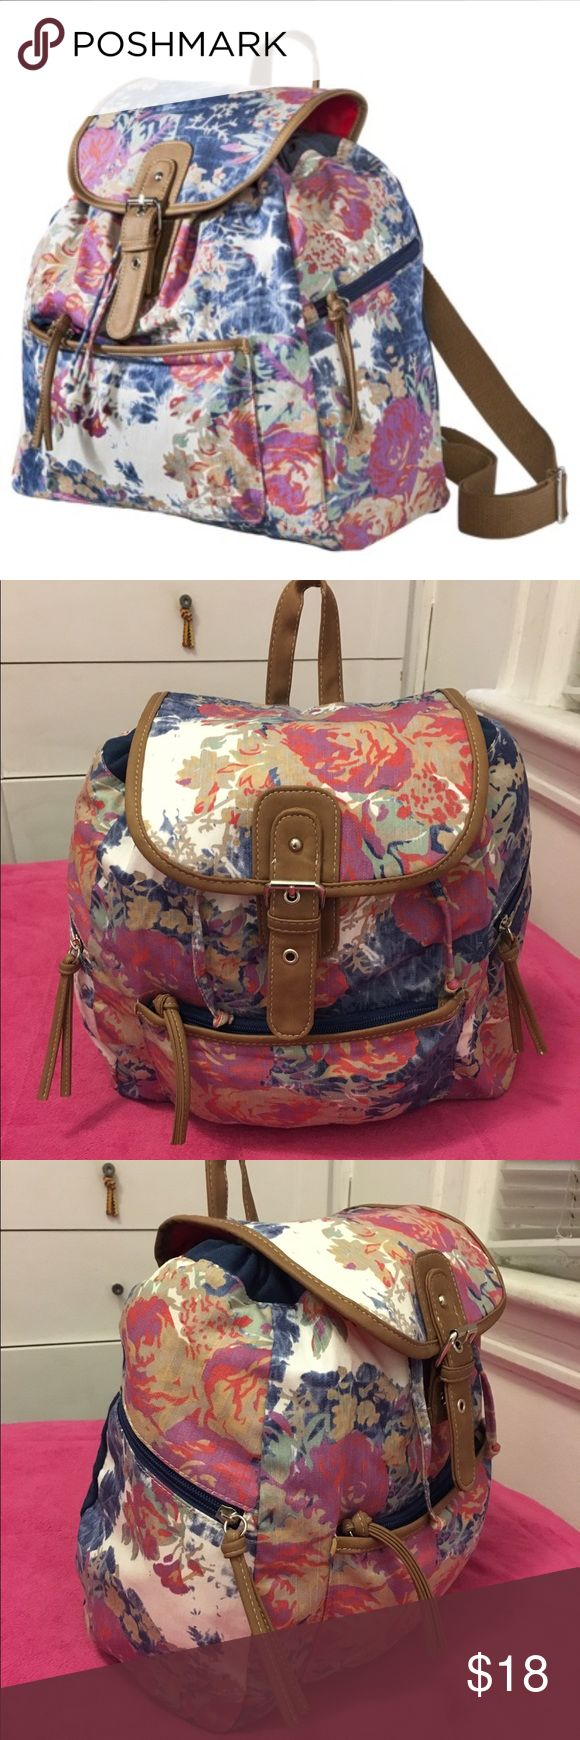 Mossimo Supply Co Floral Backpack Super cute Mossimo Supply Co Floral Backpack. Very spacious and comfortable for everyday! Mossimo Supply Co Bags Backpacks